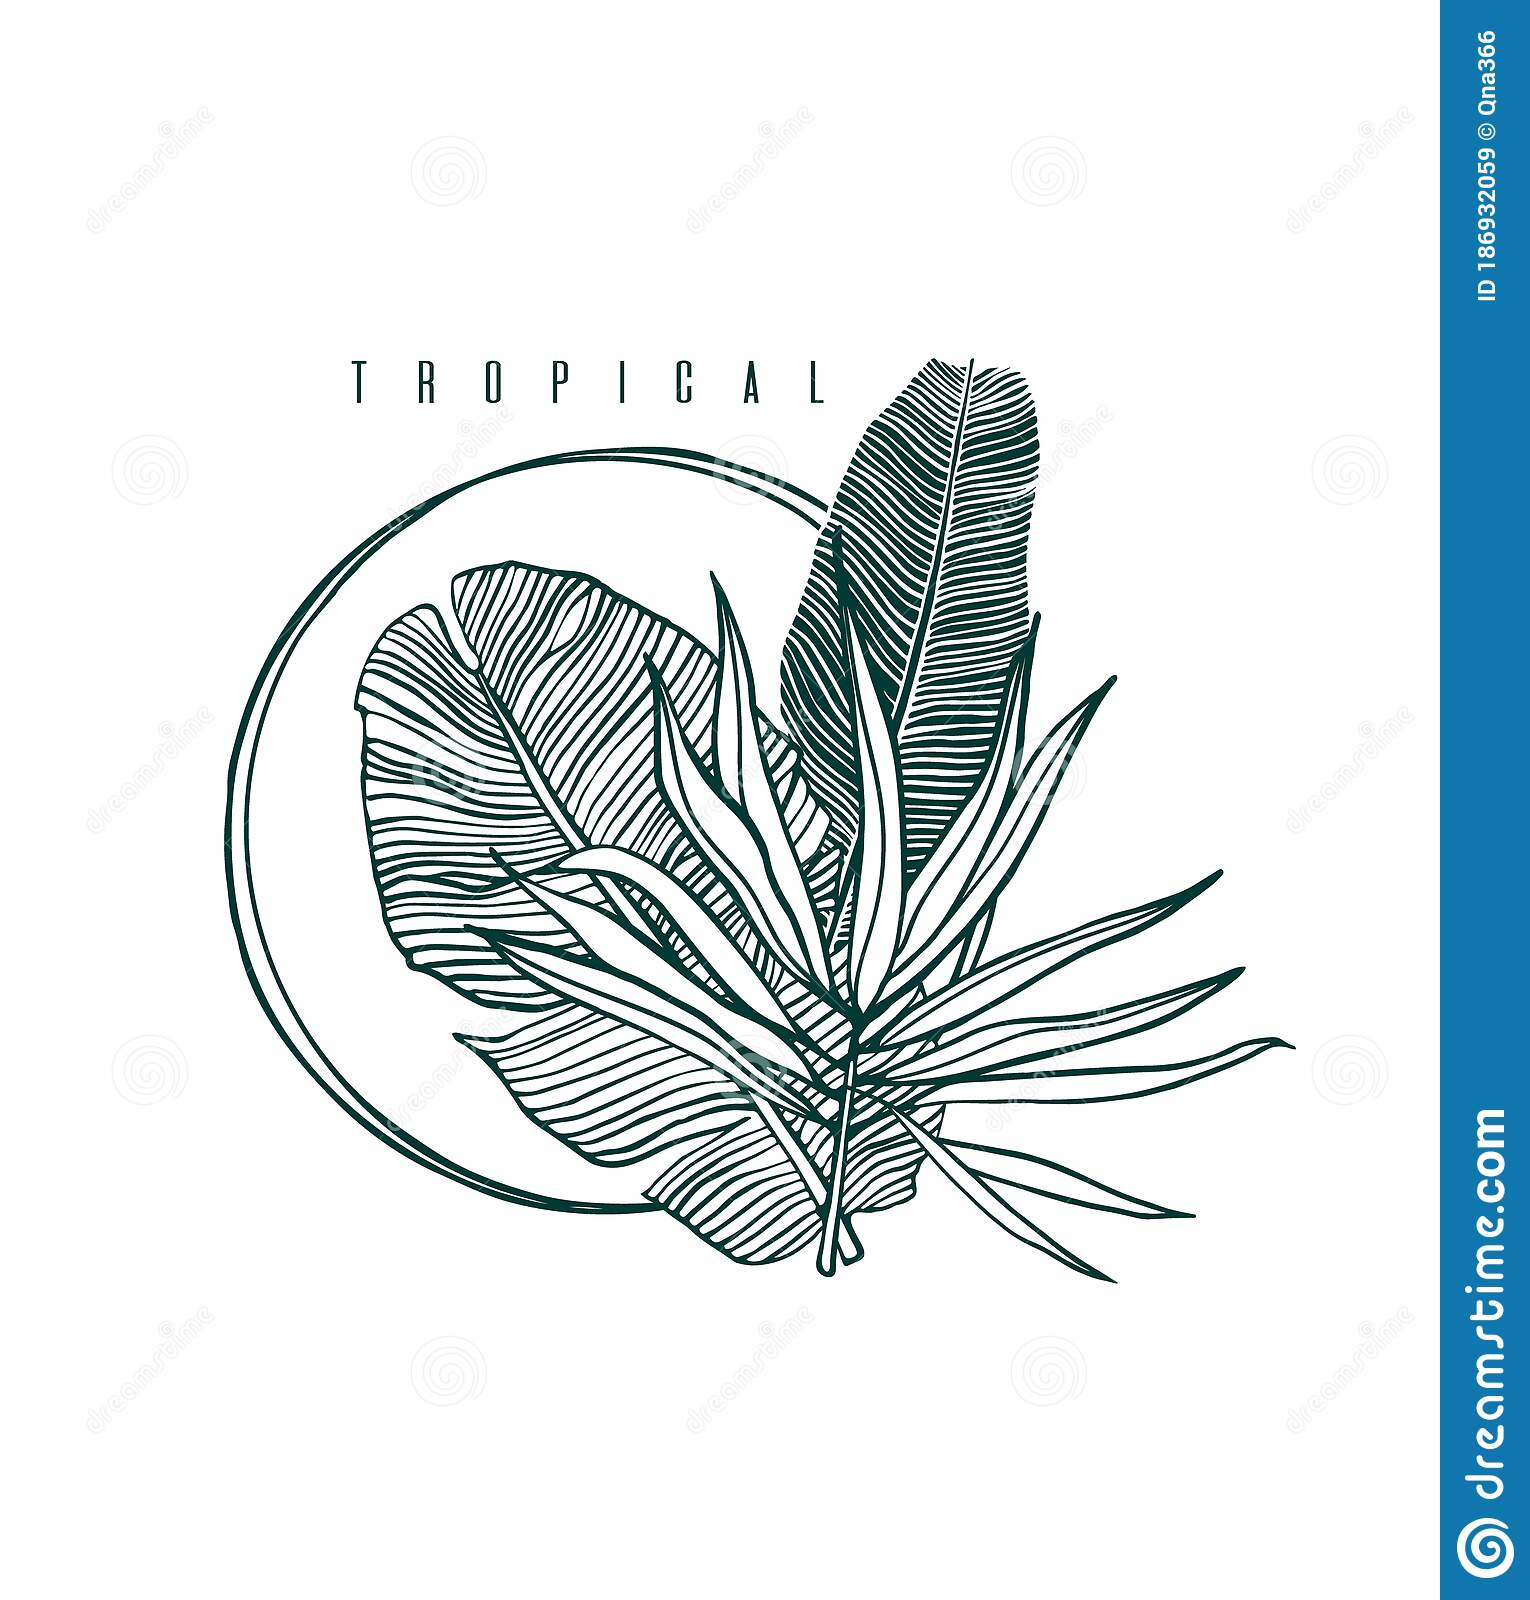 Icon With Palm And Banana Leaf Outline Drawing Of Tropical Leaves Stock Vector Illustration Of Icon Aloha 186932059 Tropical plants leaves watercolor sketch icons vector. dreamstime com